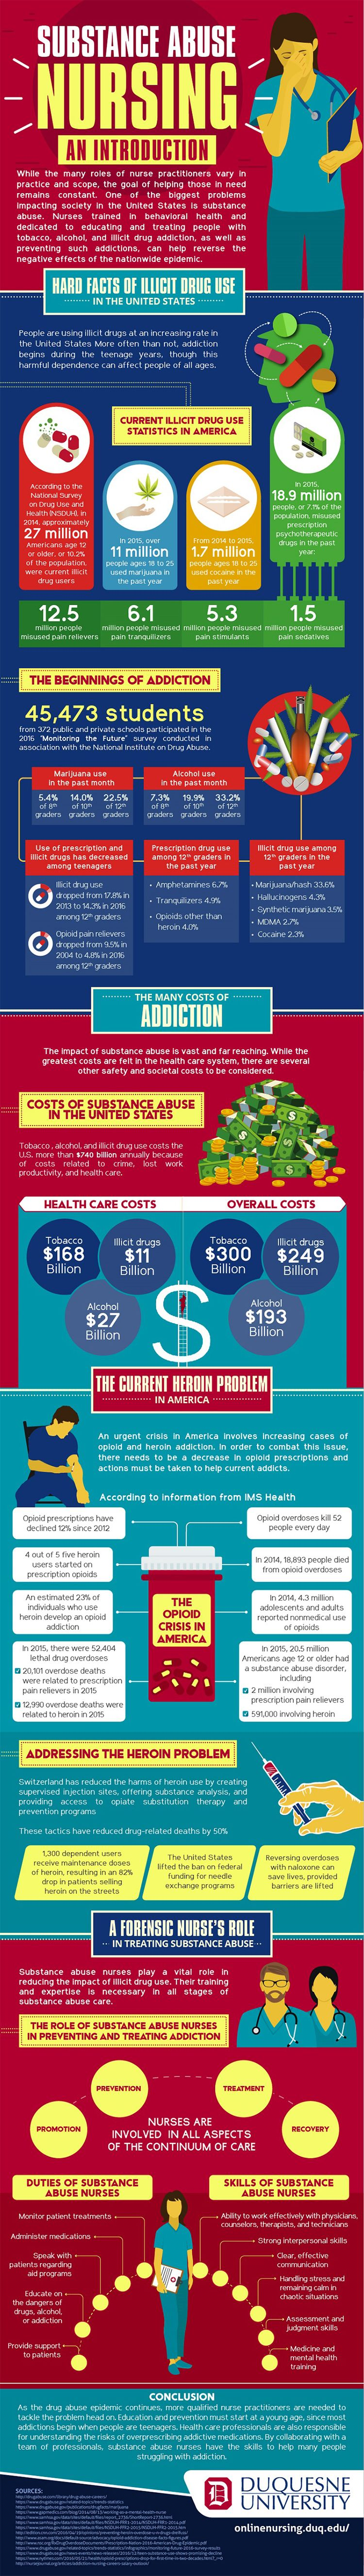 The Critical Role of Nursing Support in Substance Abuse - Infographic